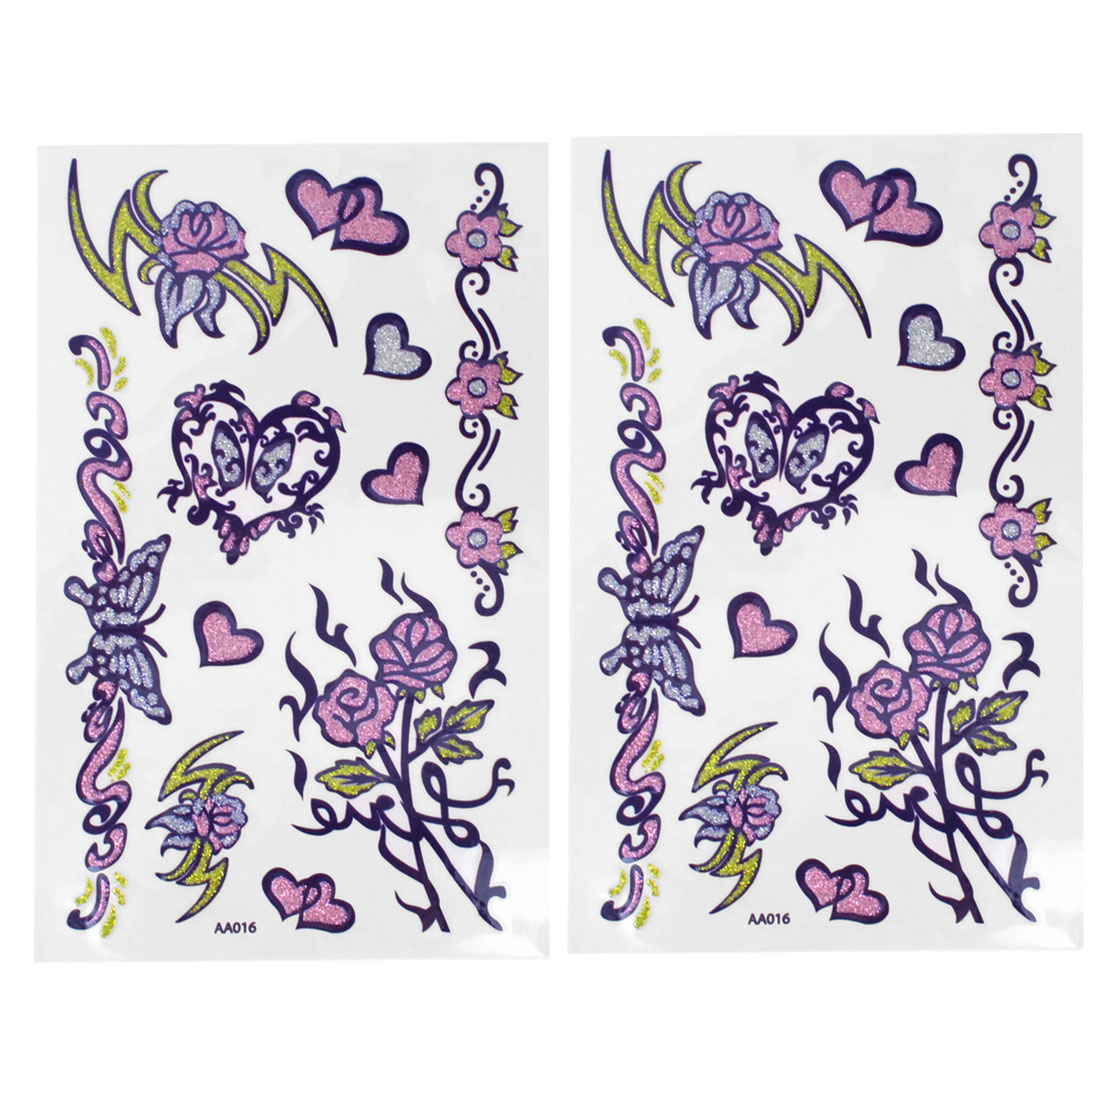 2 Pcs Skin Ornament Heart Flowers Butterfly Pattern Multicolor Transfer Tribal Tattoo Decals Stickers